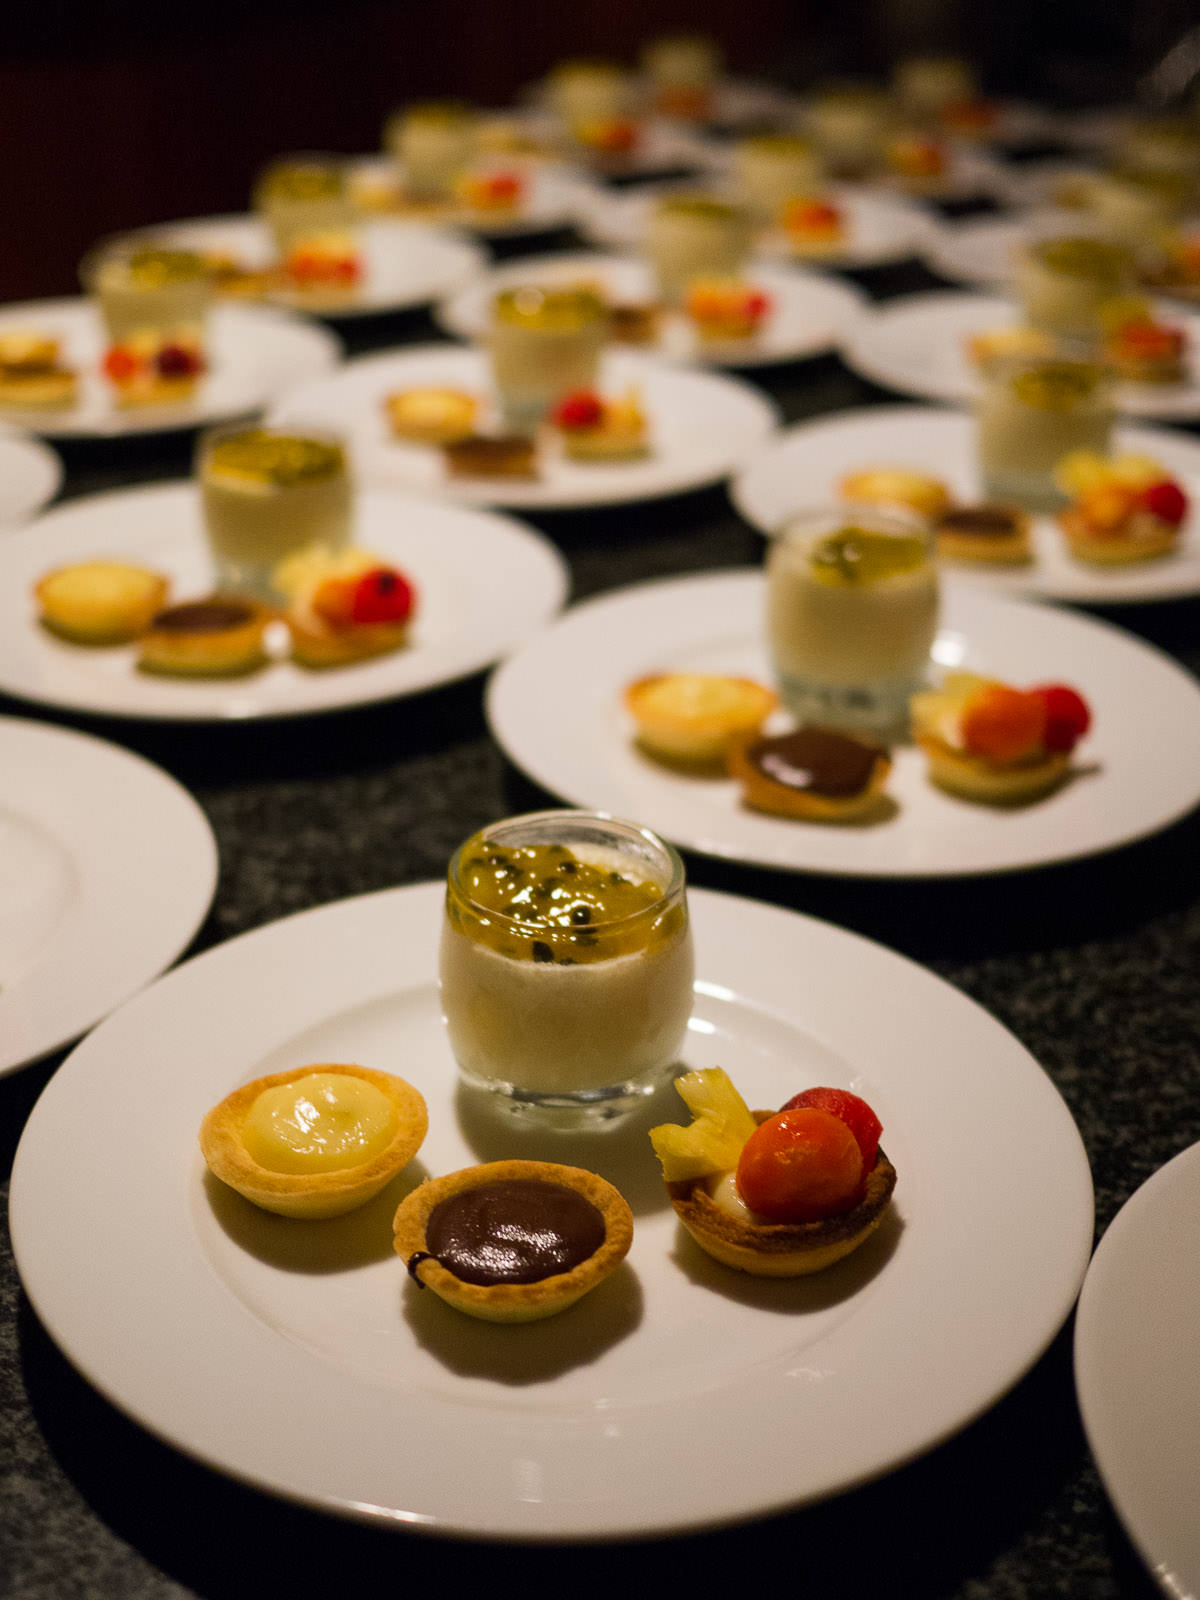 Panna cotta with passionfruit